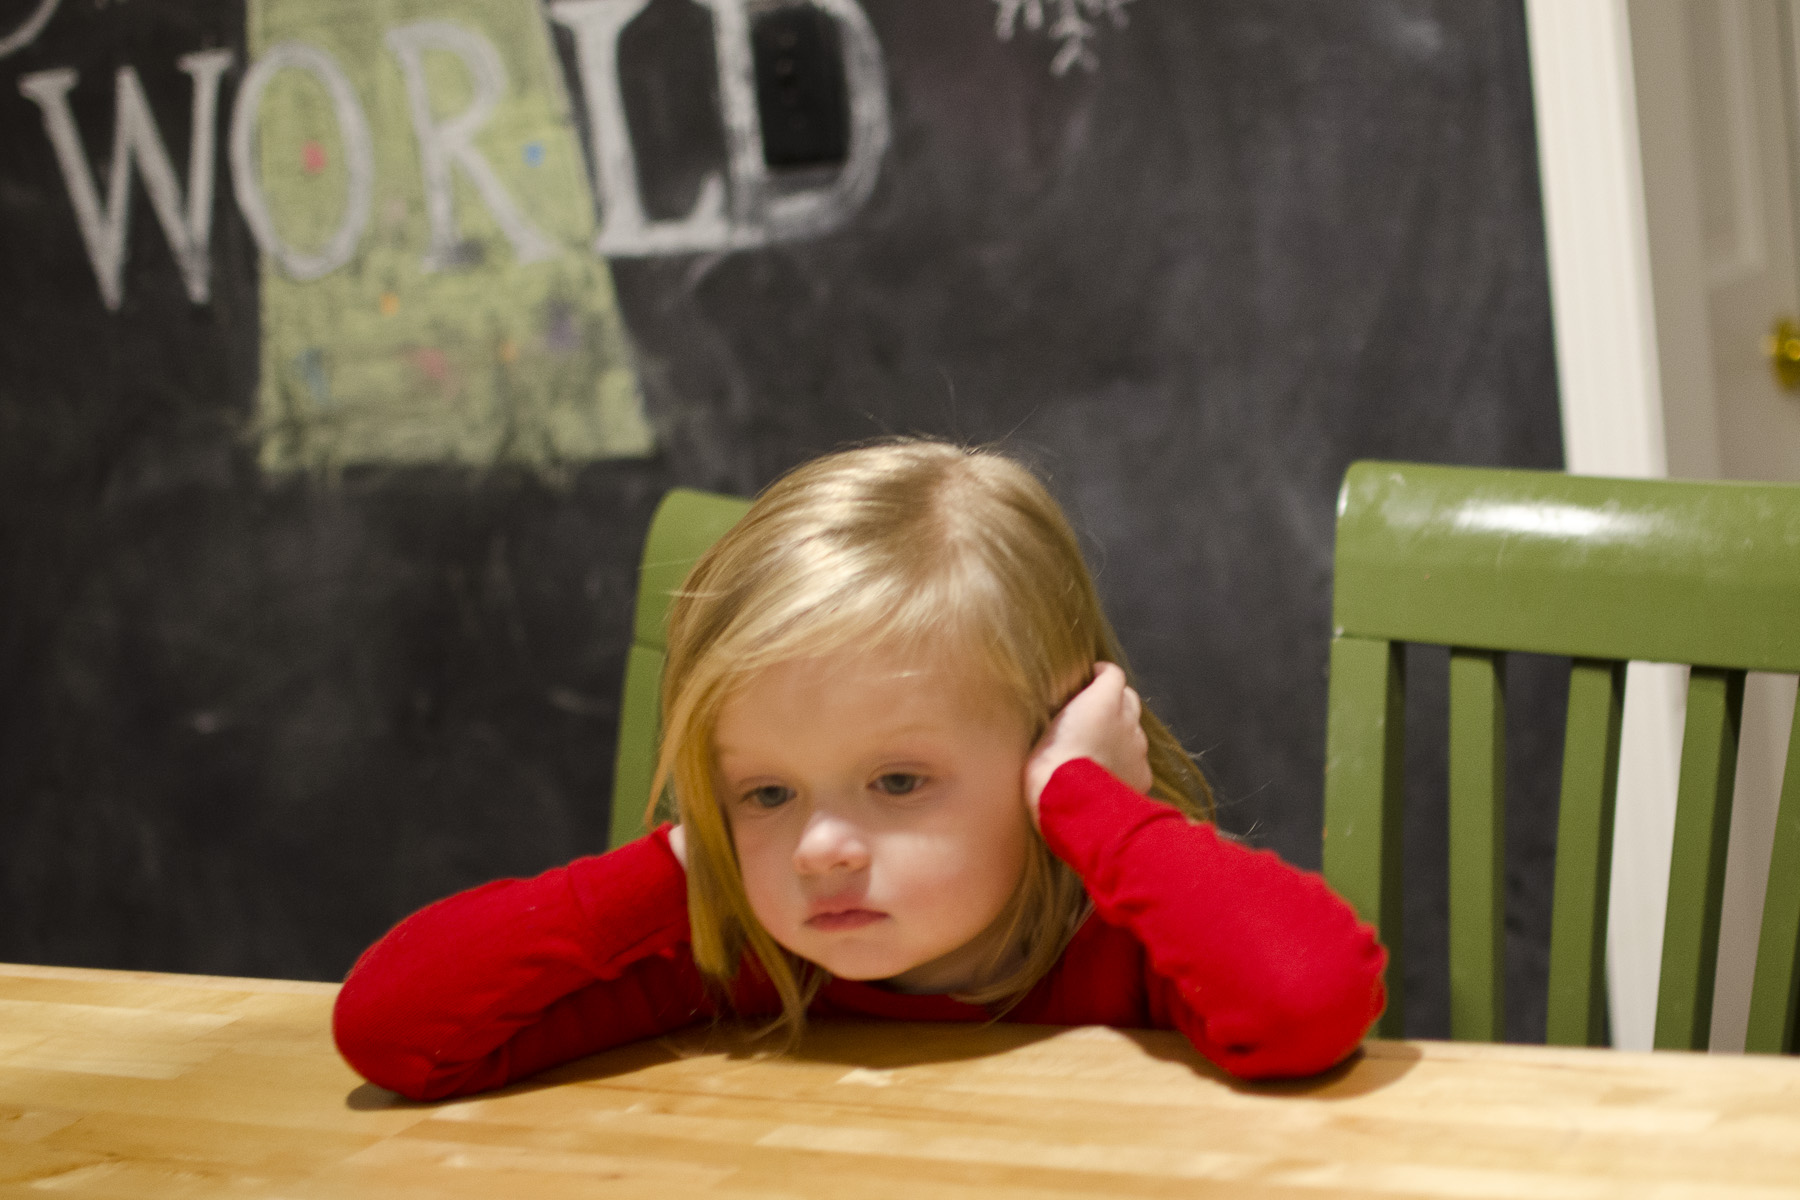 Frustrated with homework. I love capturing my kids as they are. Struggles and all.